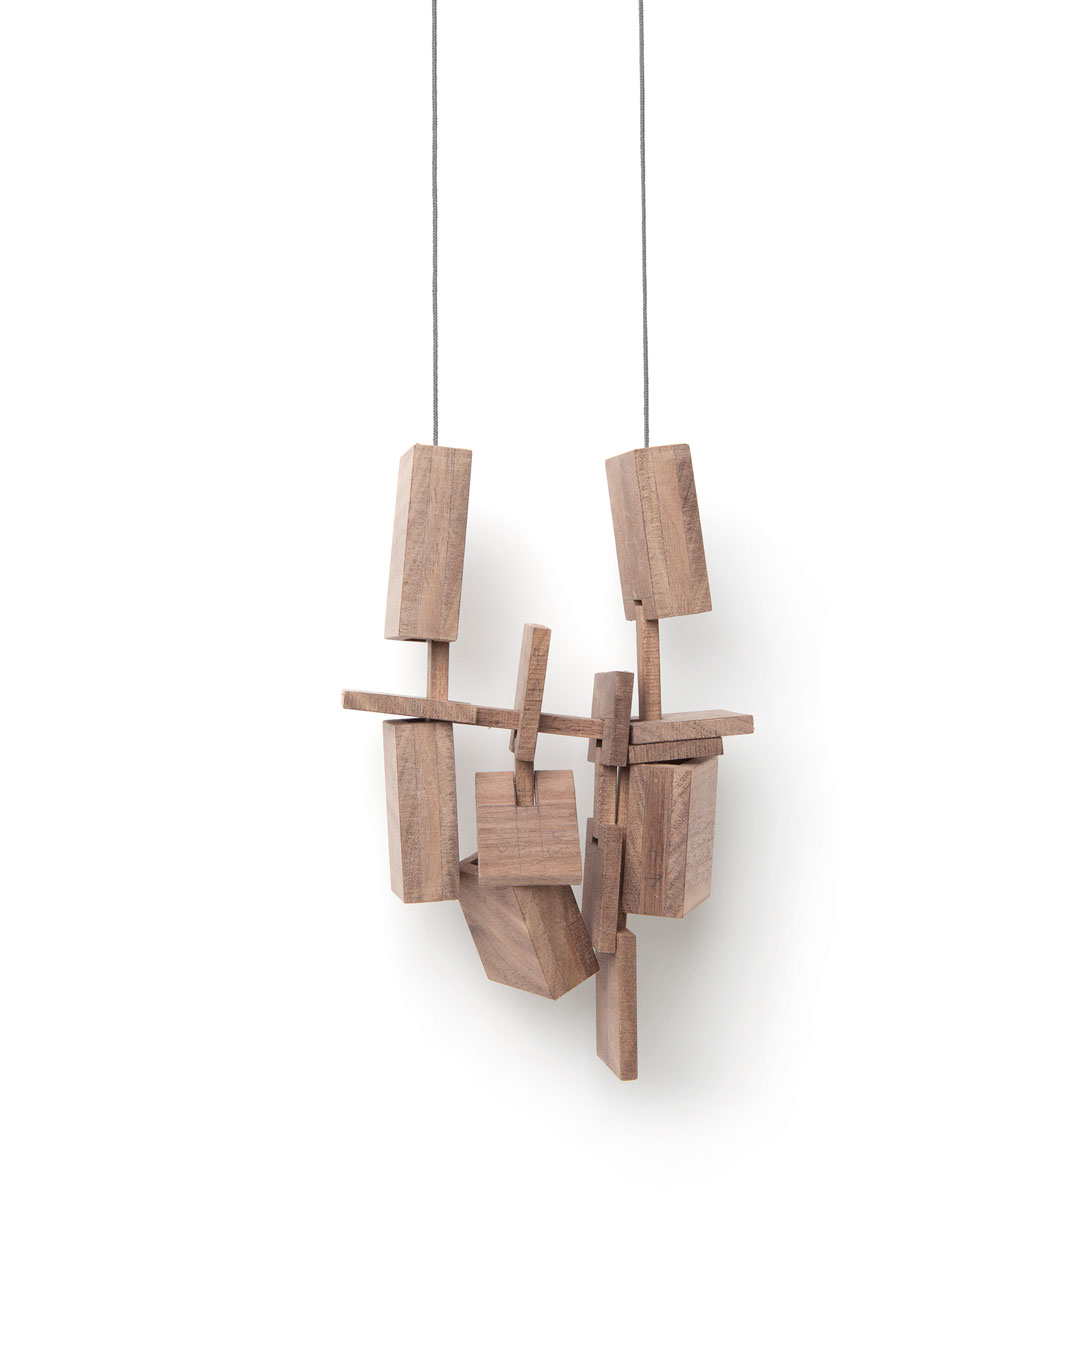 Despo Sophocleous, Momentarily Displaced 2, 2015, necklace; walnut, steel, cotton, 170 x 105 x 35 mm, €1700